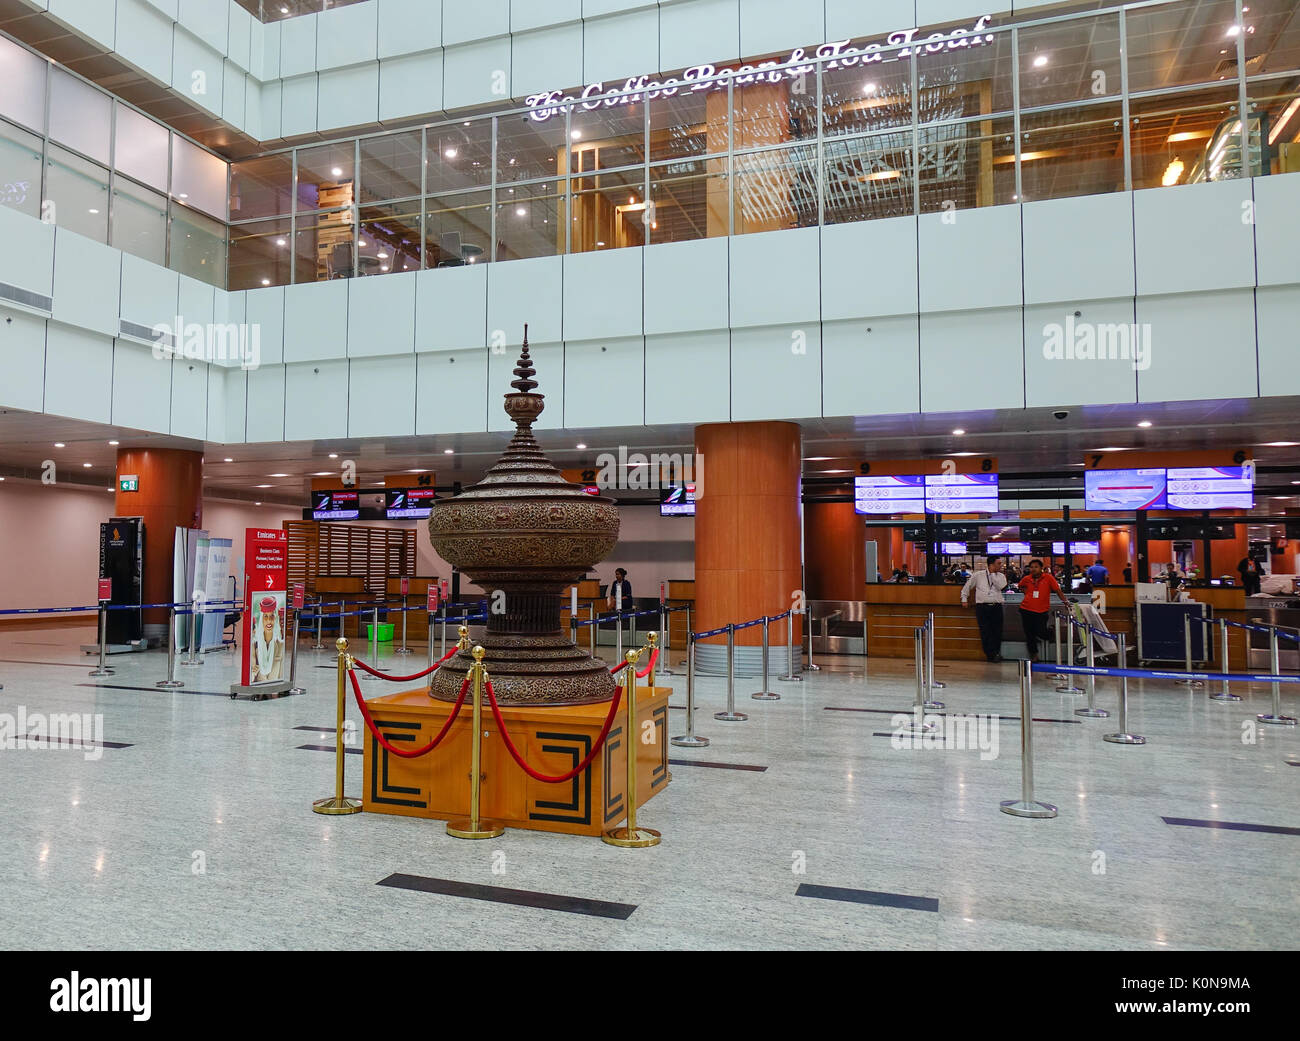 Yangon, Myanmar - Feb 14, 2017. Interior of Departure Hall of Yangon Airport in Myanmar. Yangon Airport is the primary and busiest international airpo - Stock Image